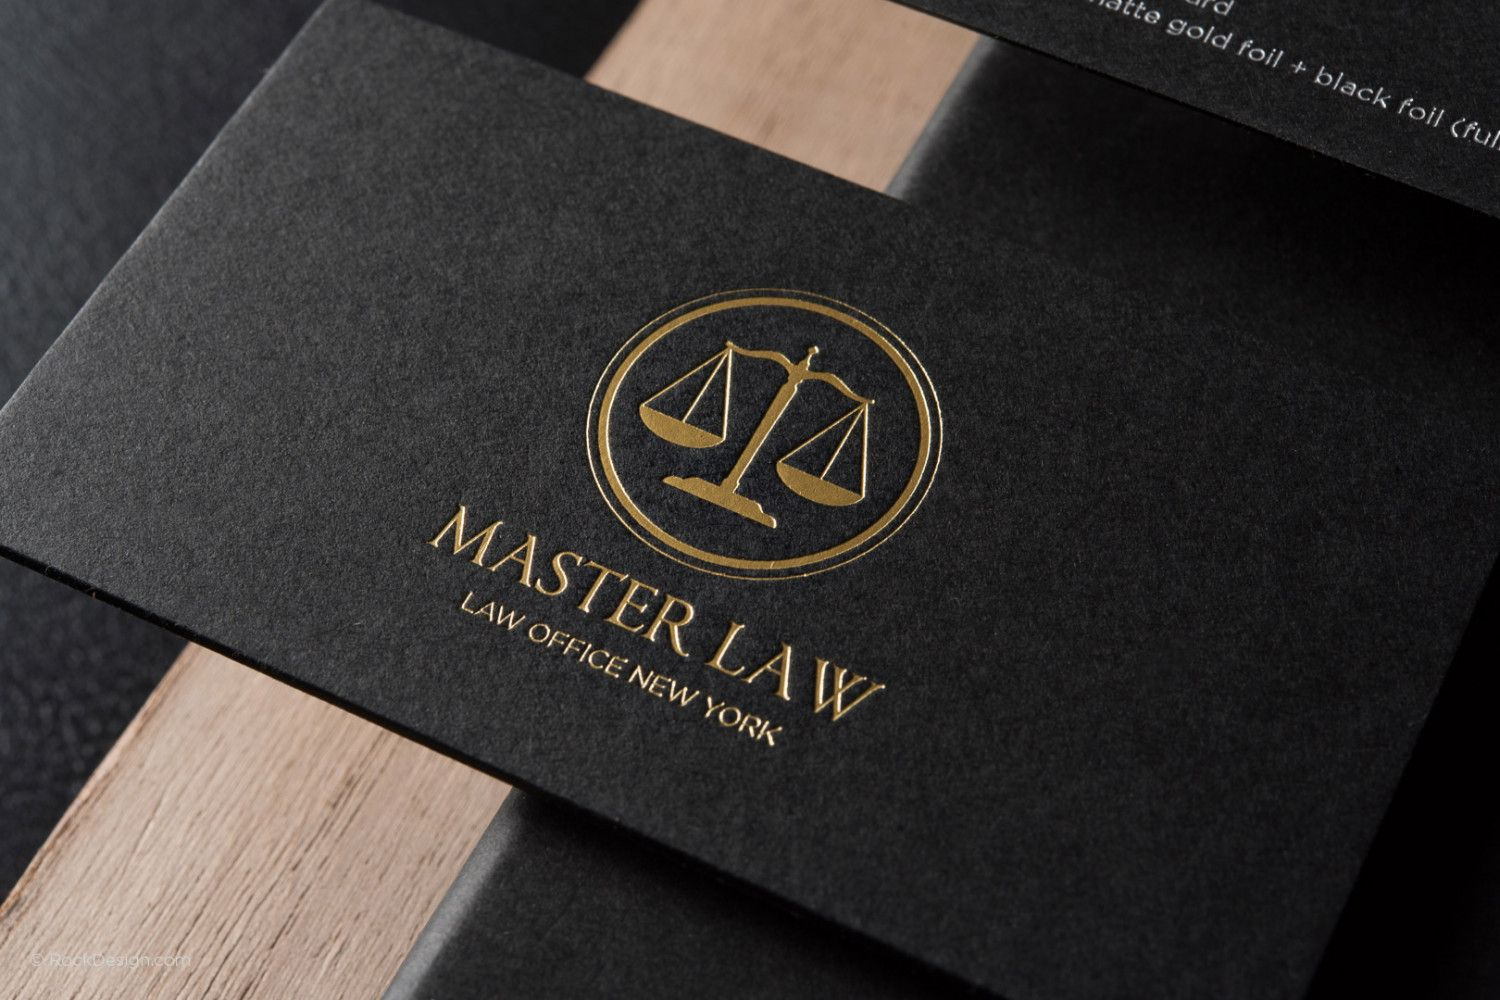 Free Lawyer Business Card Template | Rockdesign | Lawyer With Legal Business Cards Templates Free